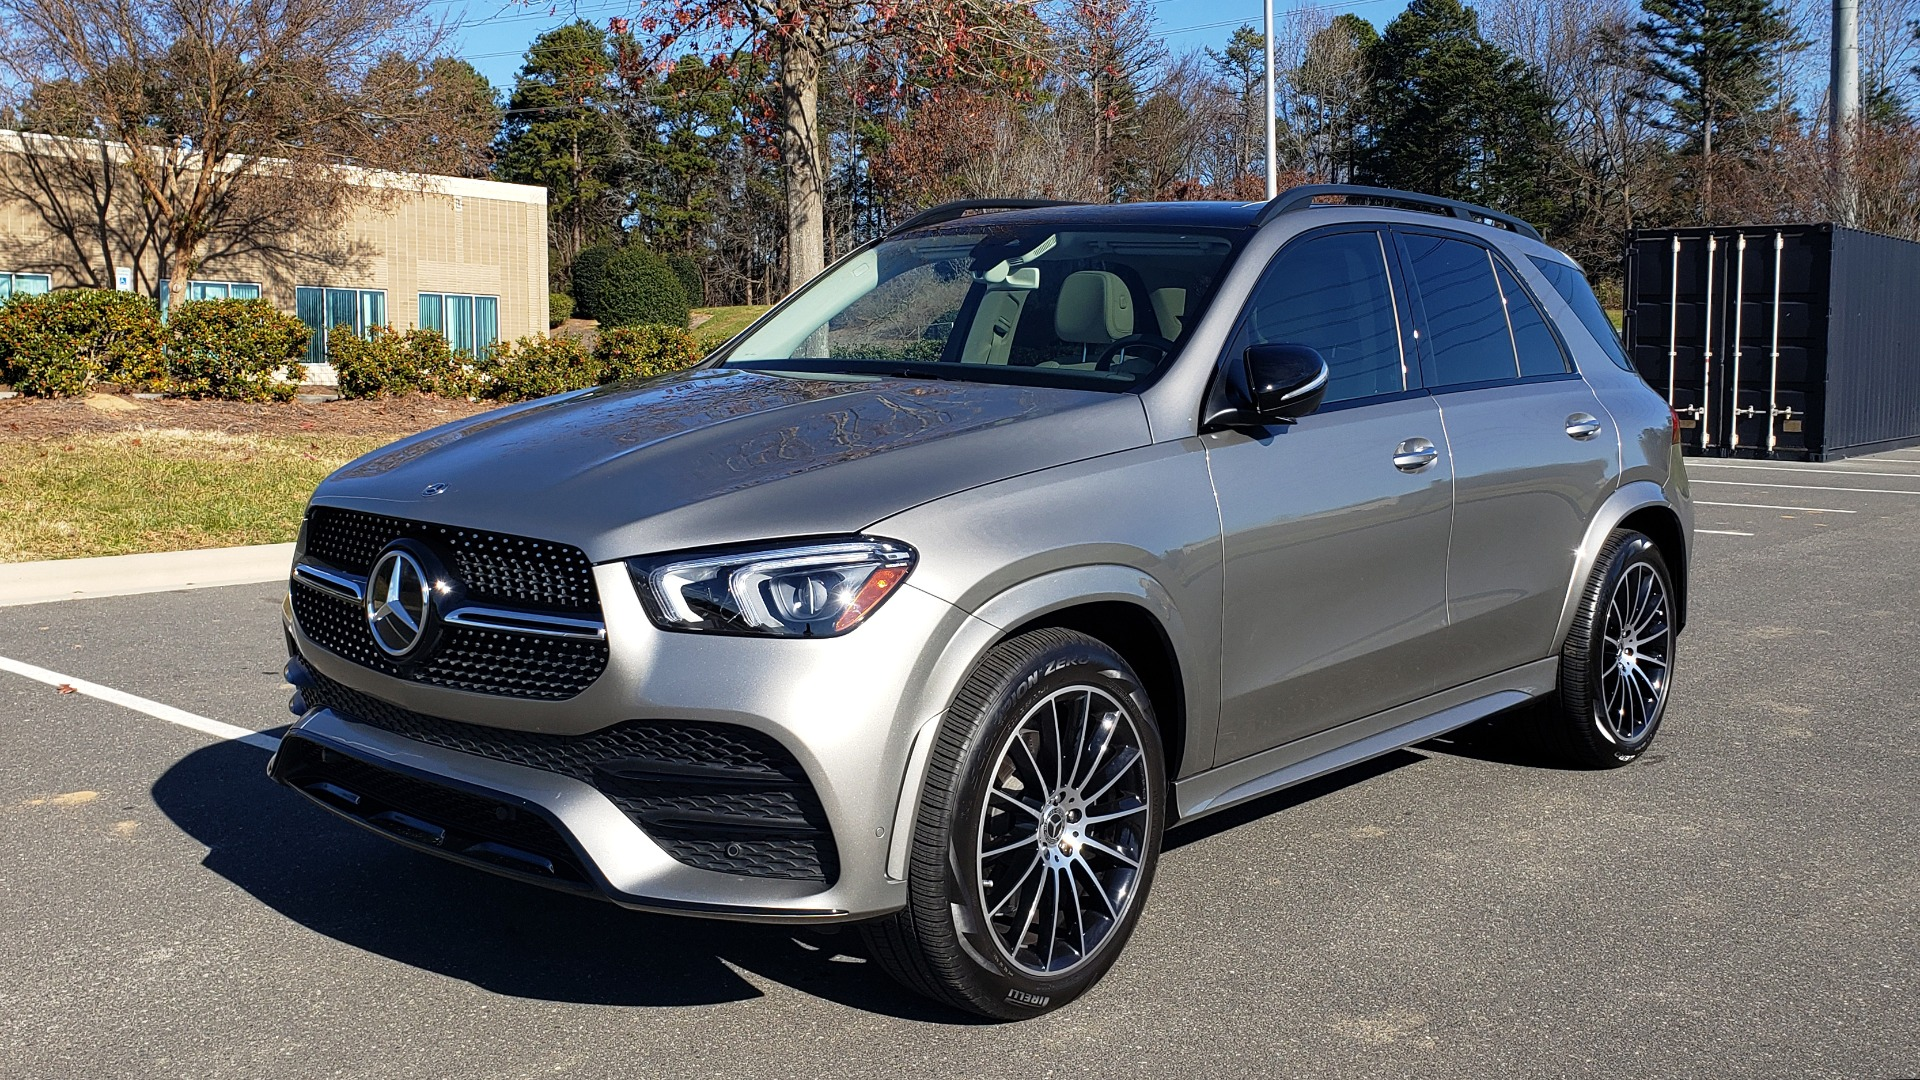 Used 2020 Mercedes-Benz GLE 350 PREMIUM / NAV / PARK ASST / NIGHT PKG / AMG LINE EXT / REARVIEW for sale Sold at Formula Imports in Charlotte NC 28227 7